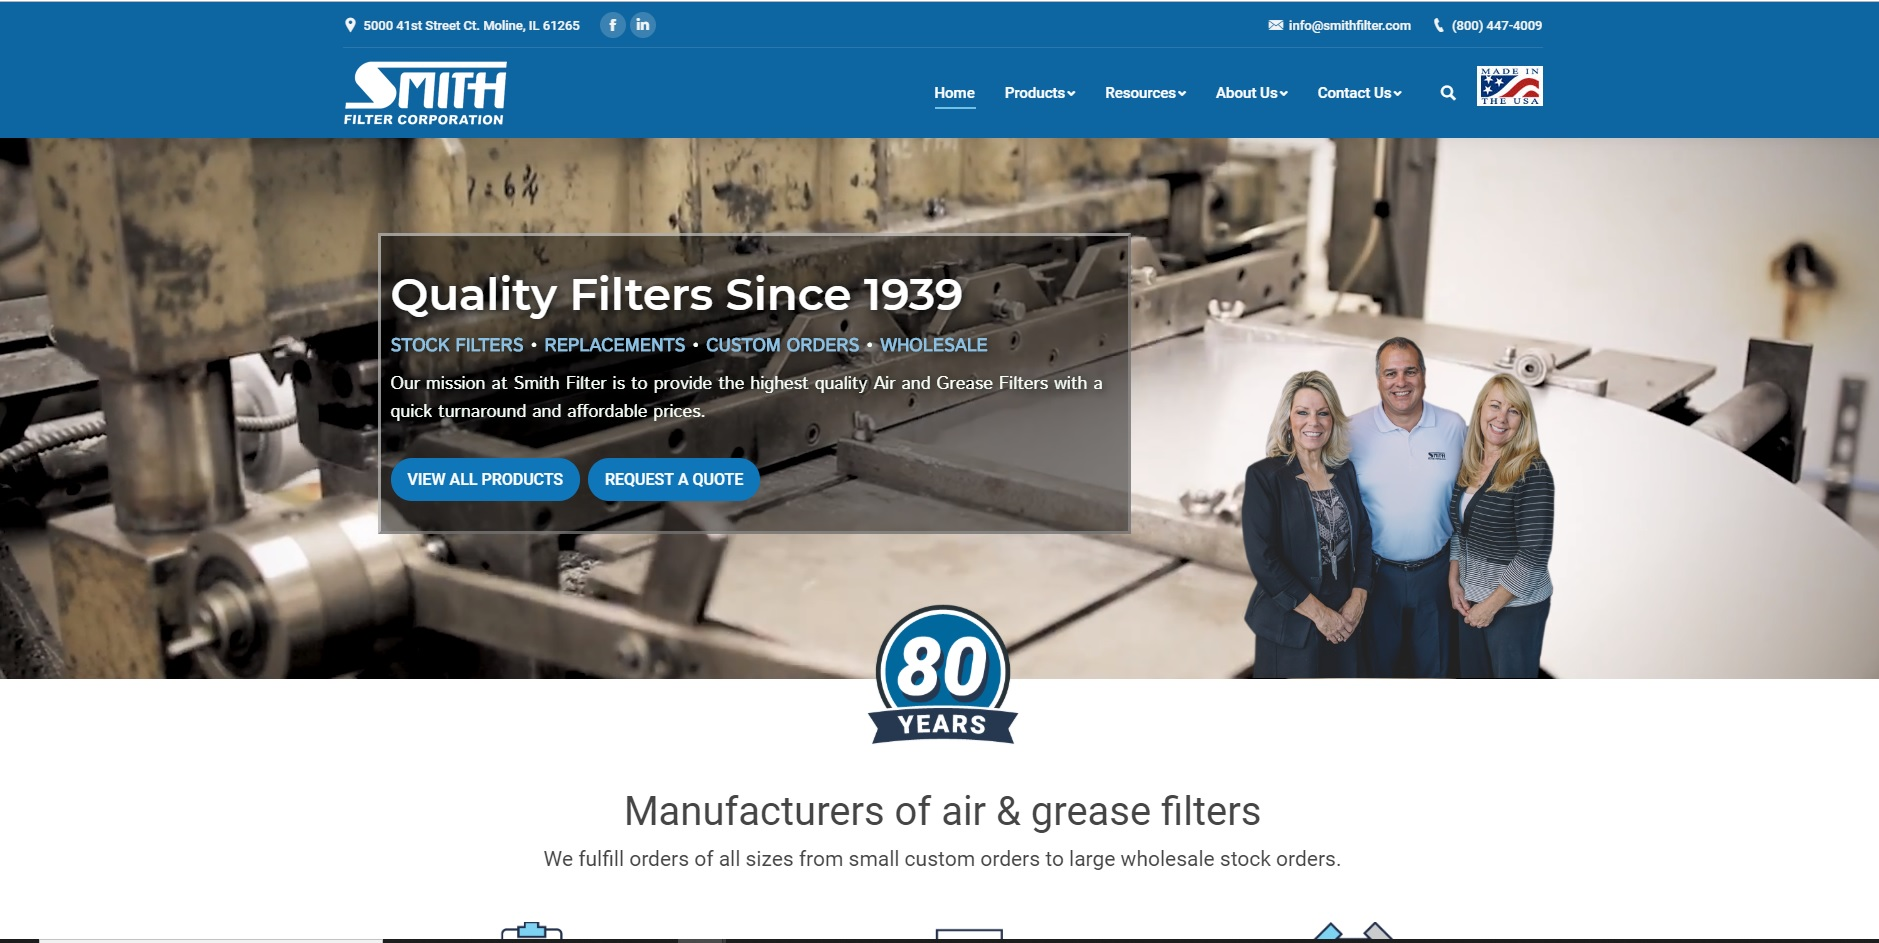 Smith Filter Corporation